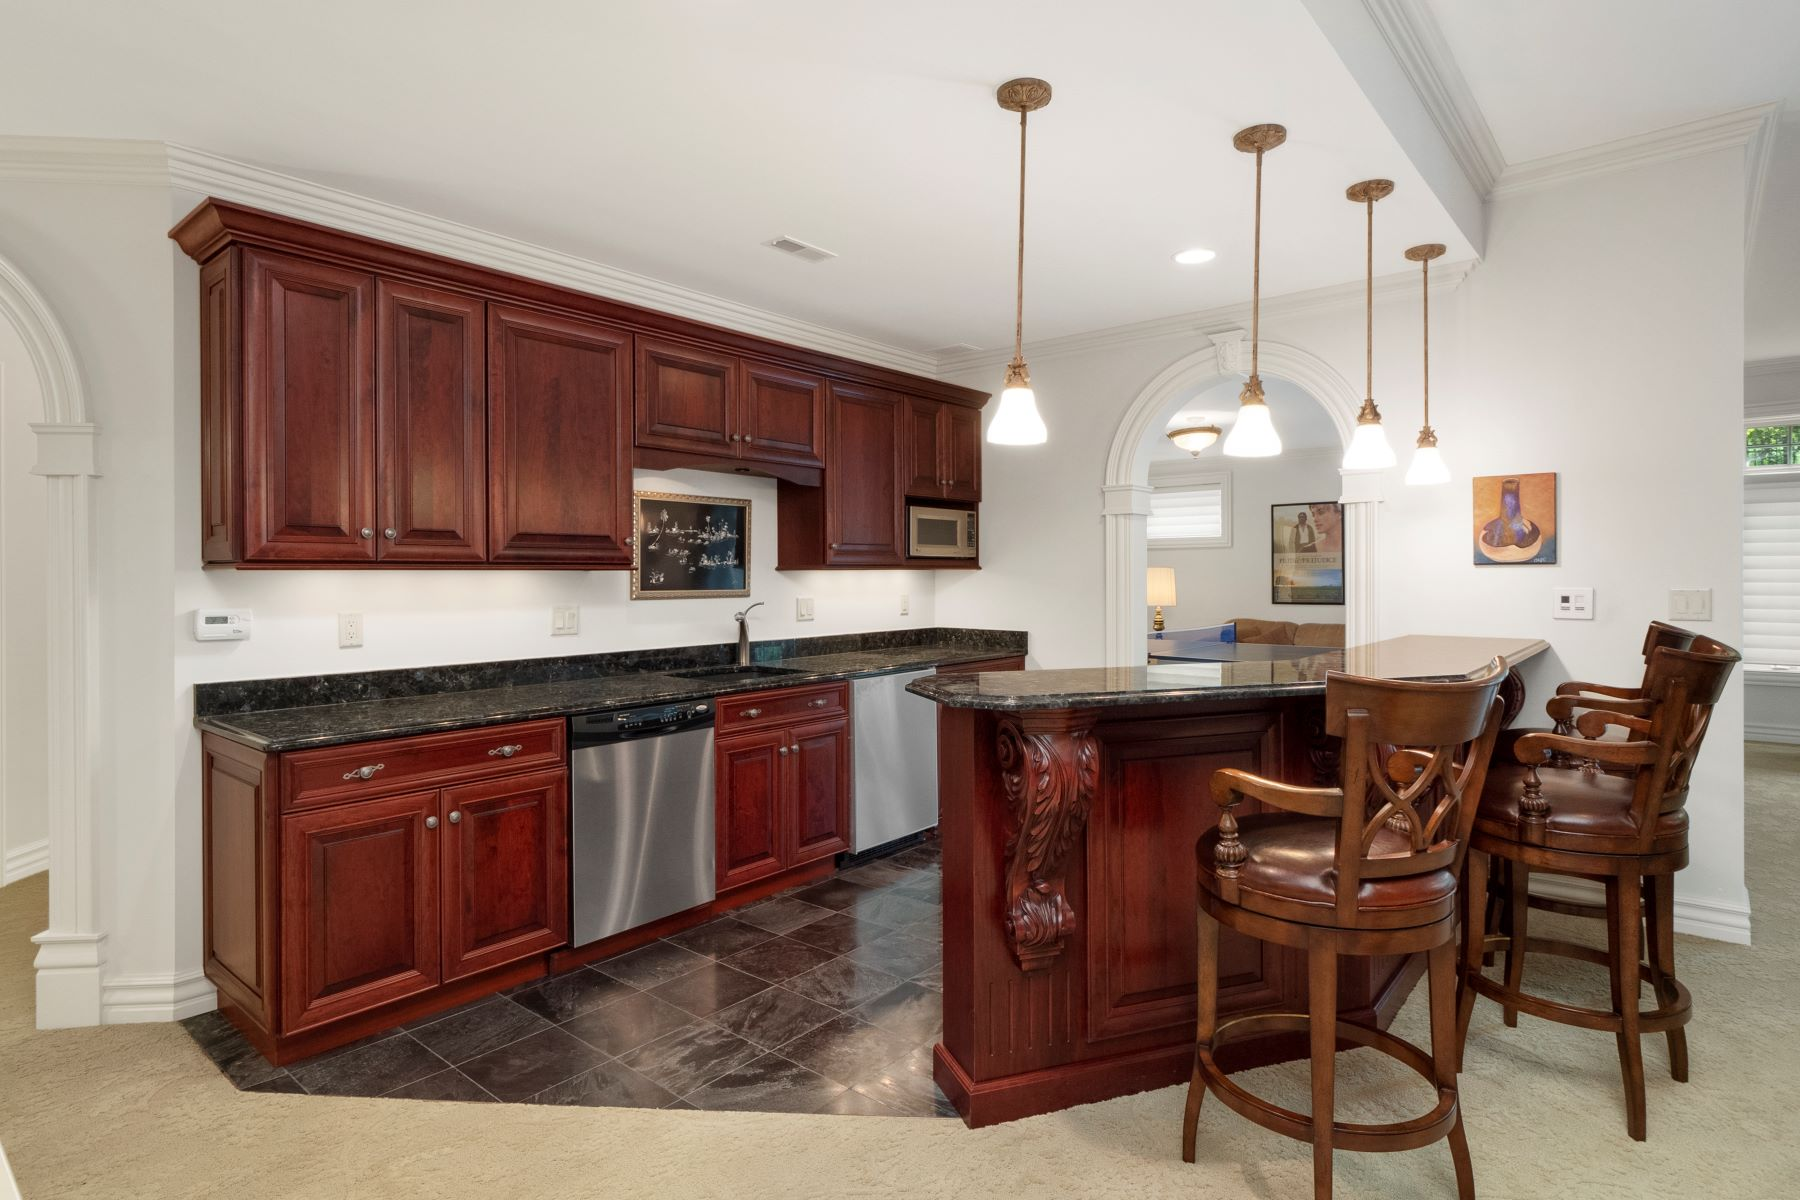 Additional photo for property listing at Pacland Estates Drive, Chesterfield, MO 63005 42 Pacland Estates Drive Chesterfield, Missouri 63005 United States